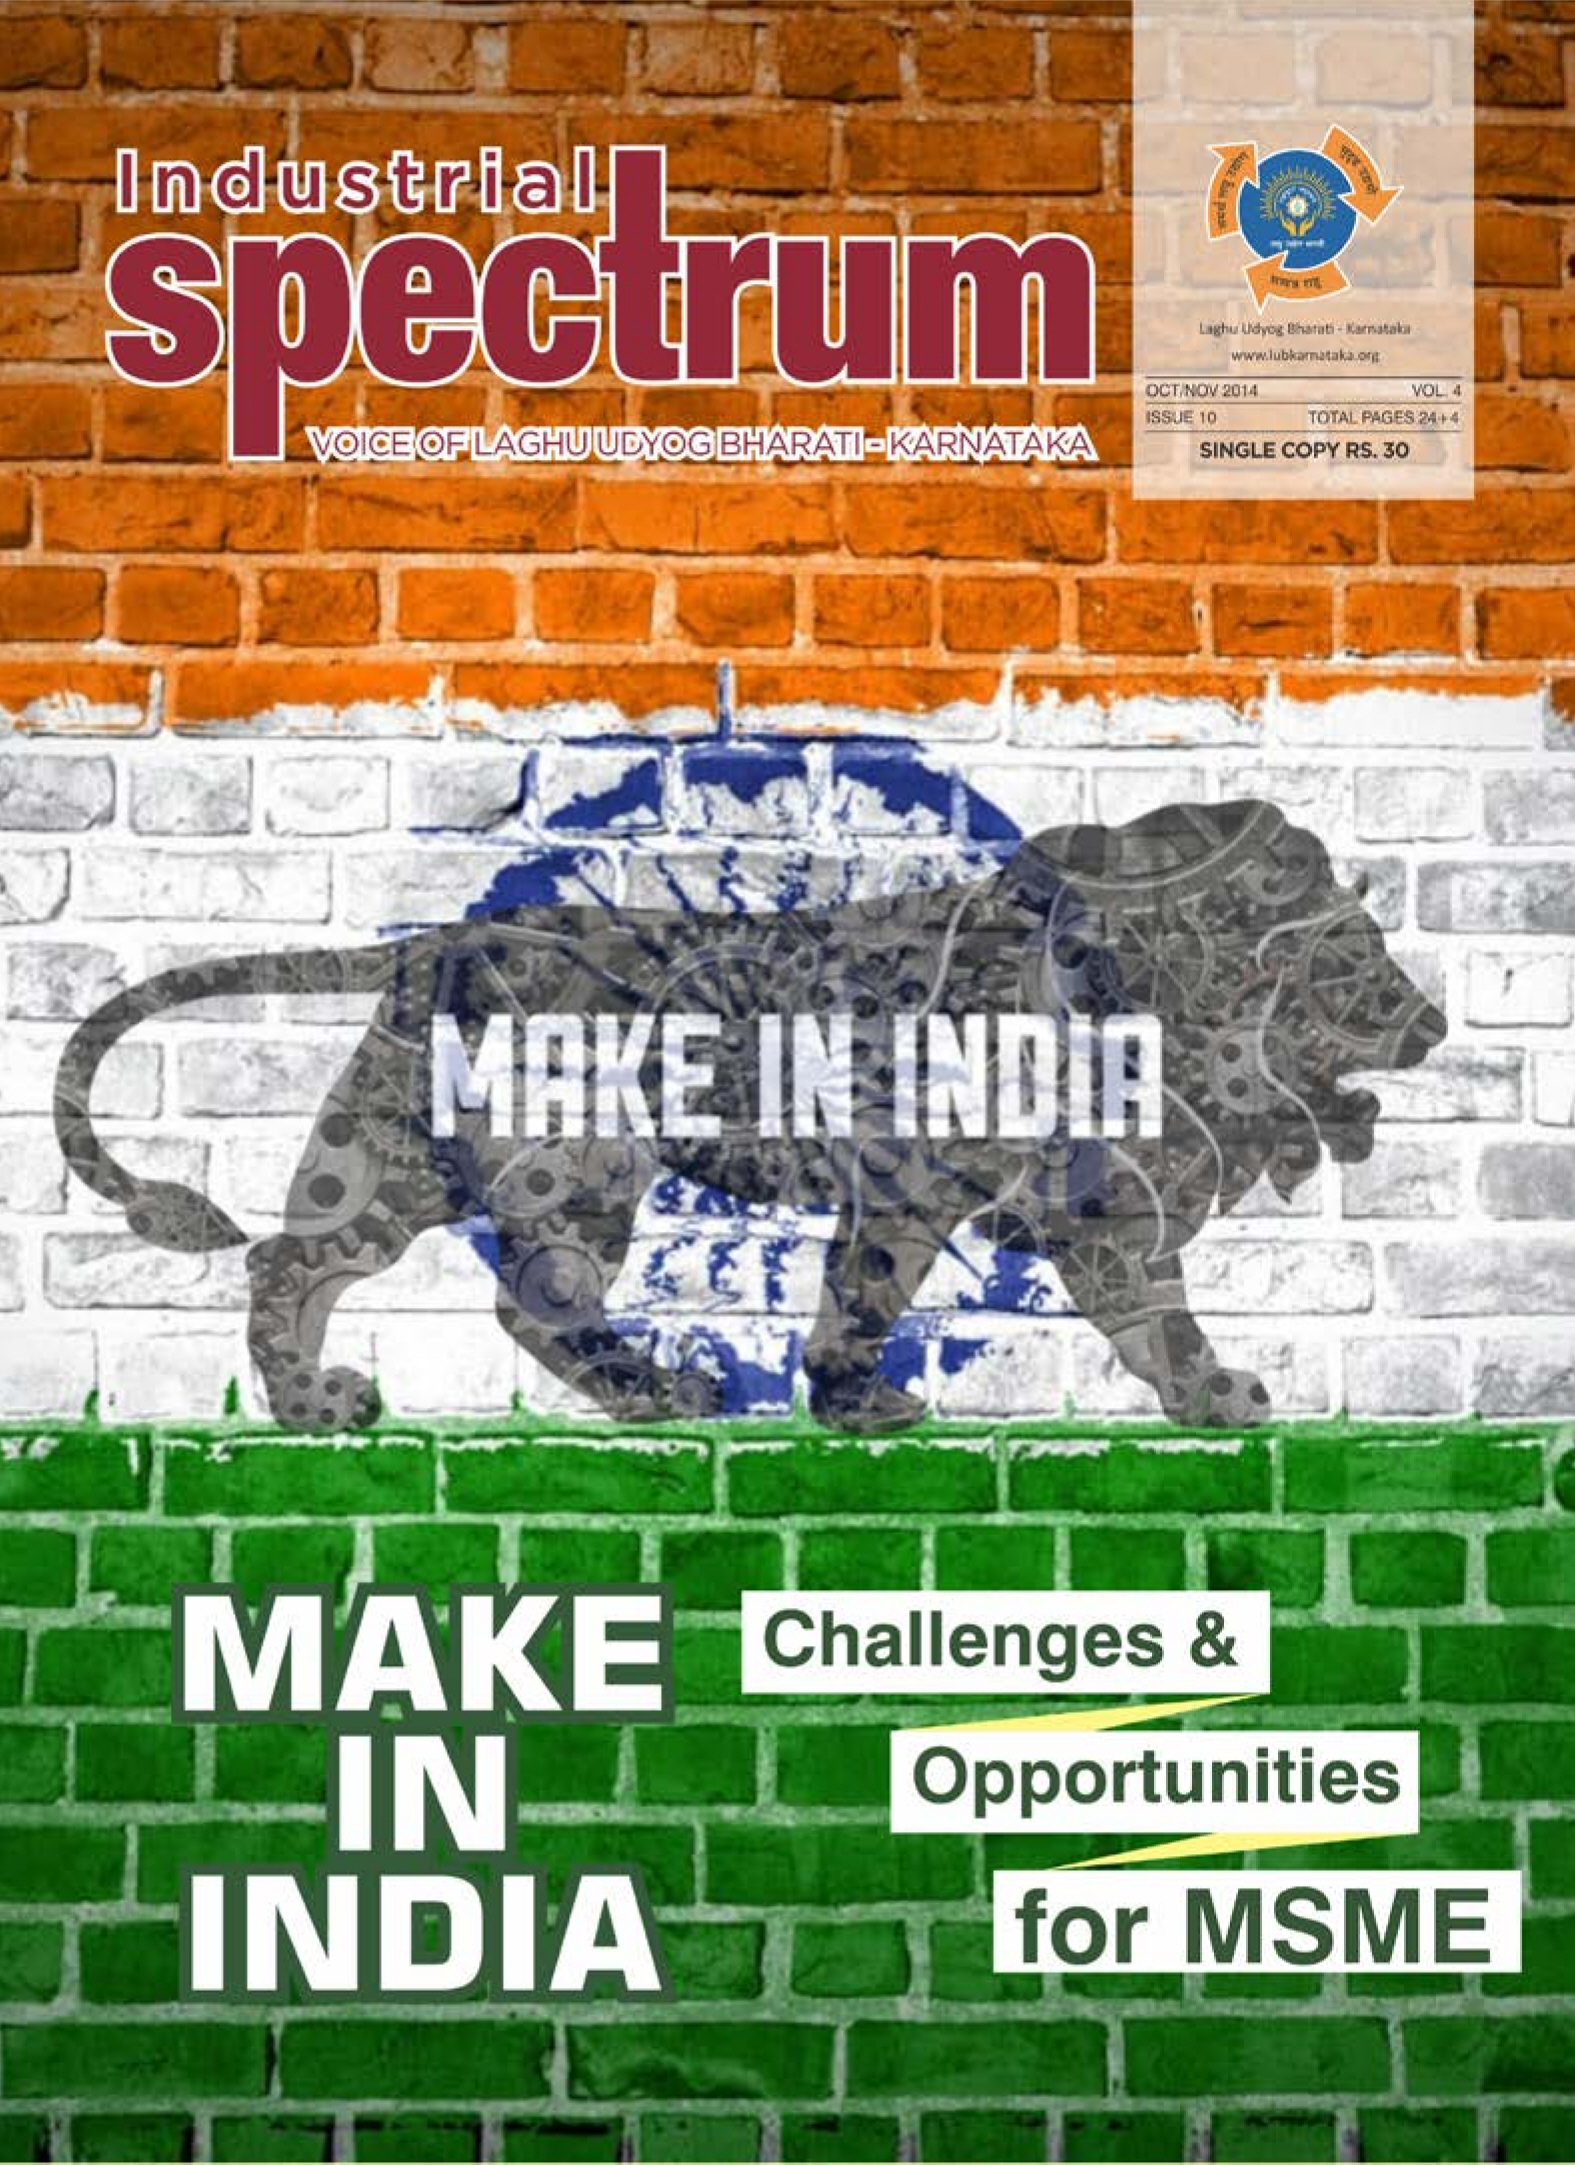 Oct nov industrial spectrum   2014